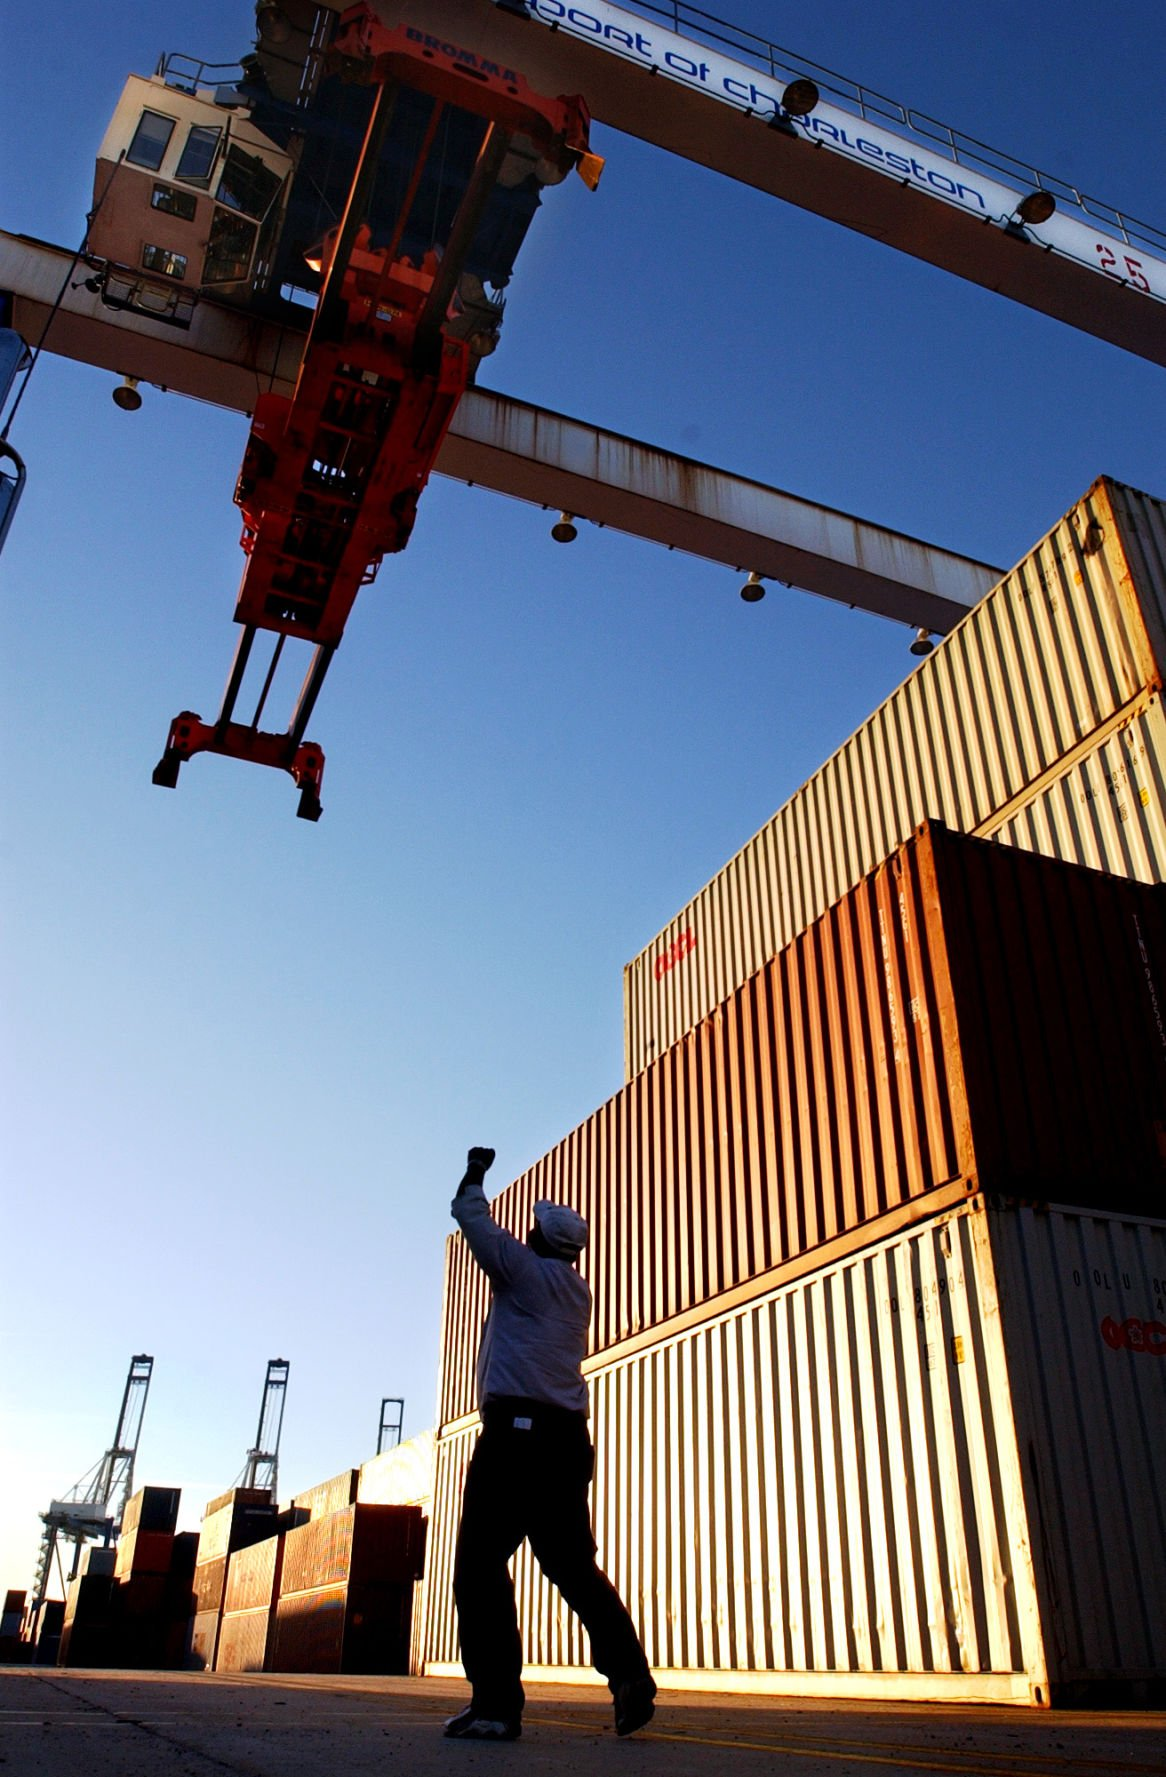 S.C. port incentives targeting business State lawmakers look to broaden tax program to lure more shippers